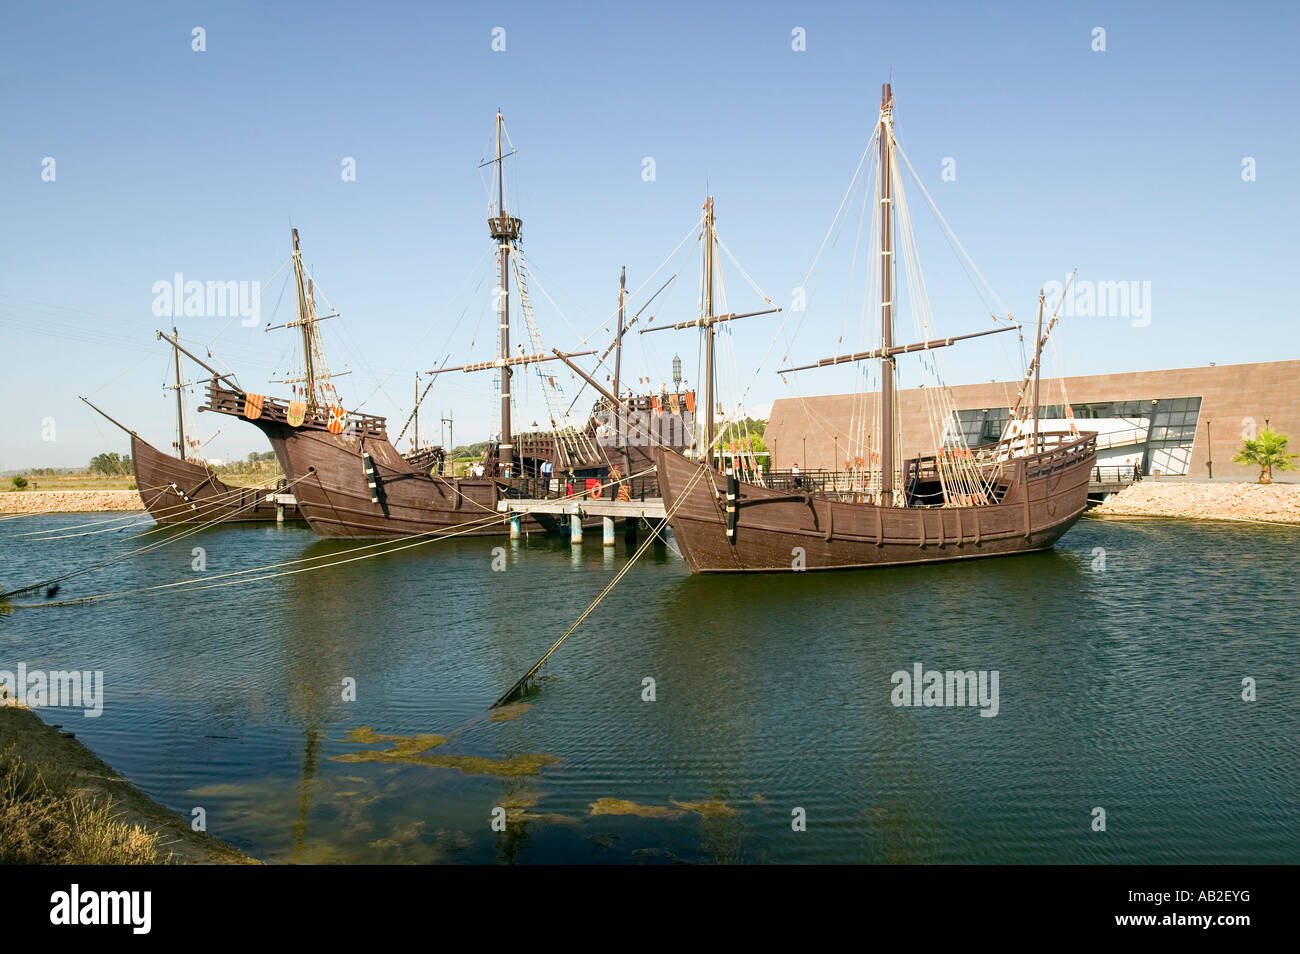 Full Size Replicas Of Christopher Columbus Ships The Santa